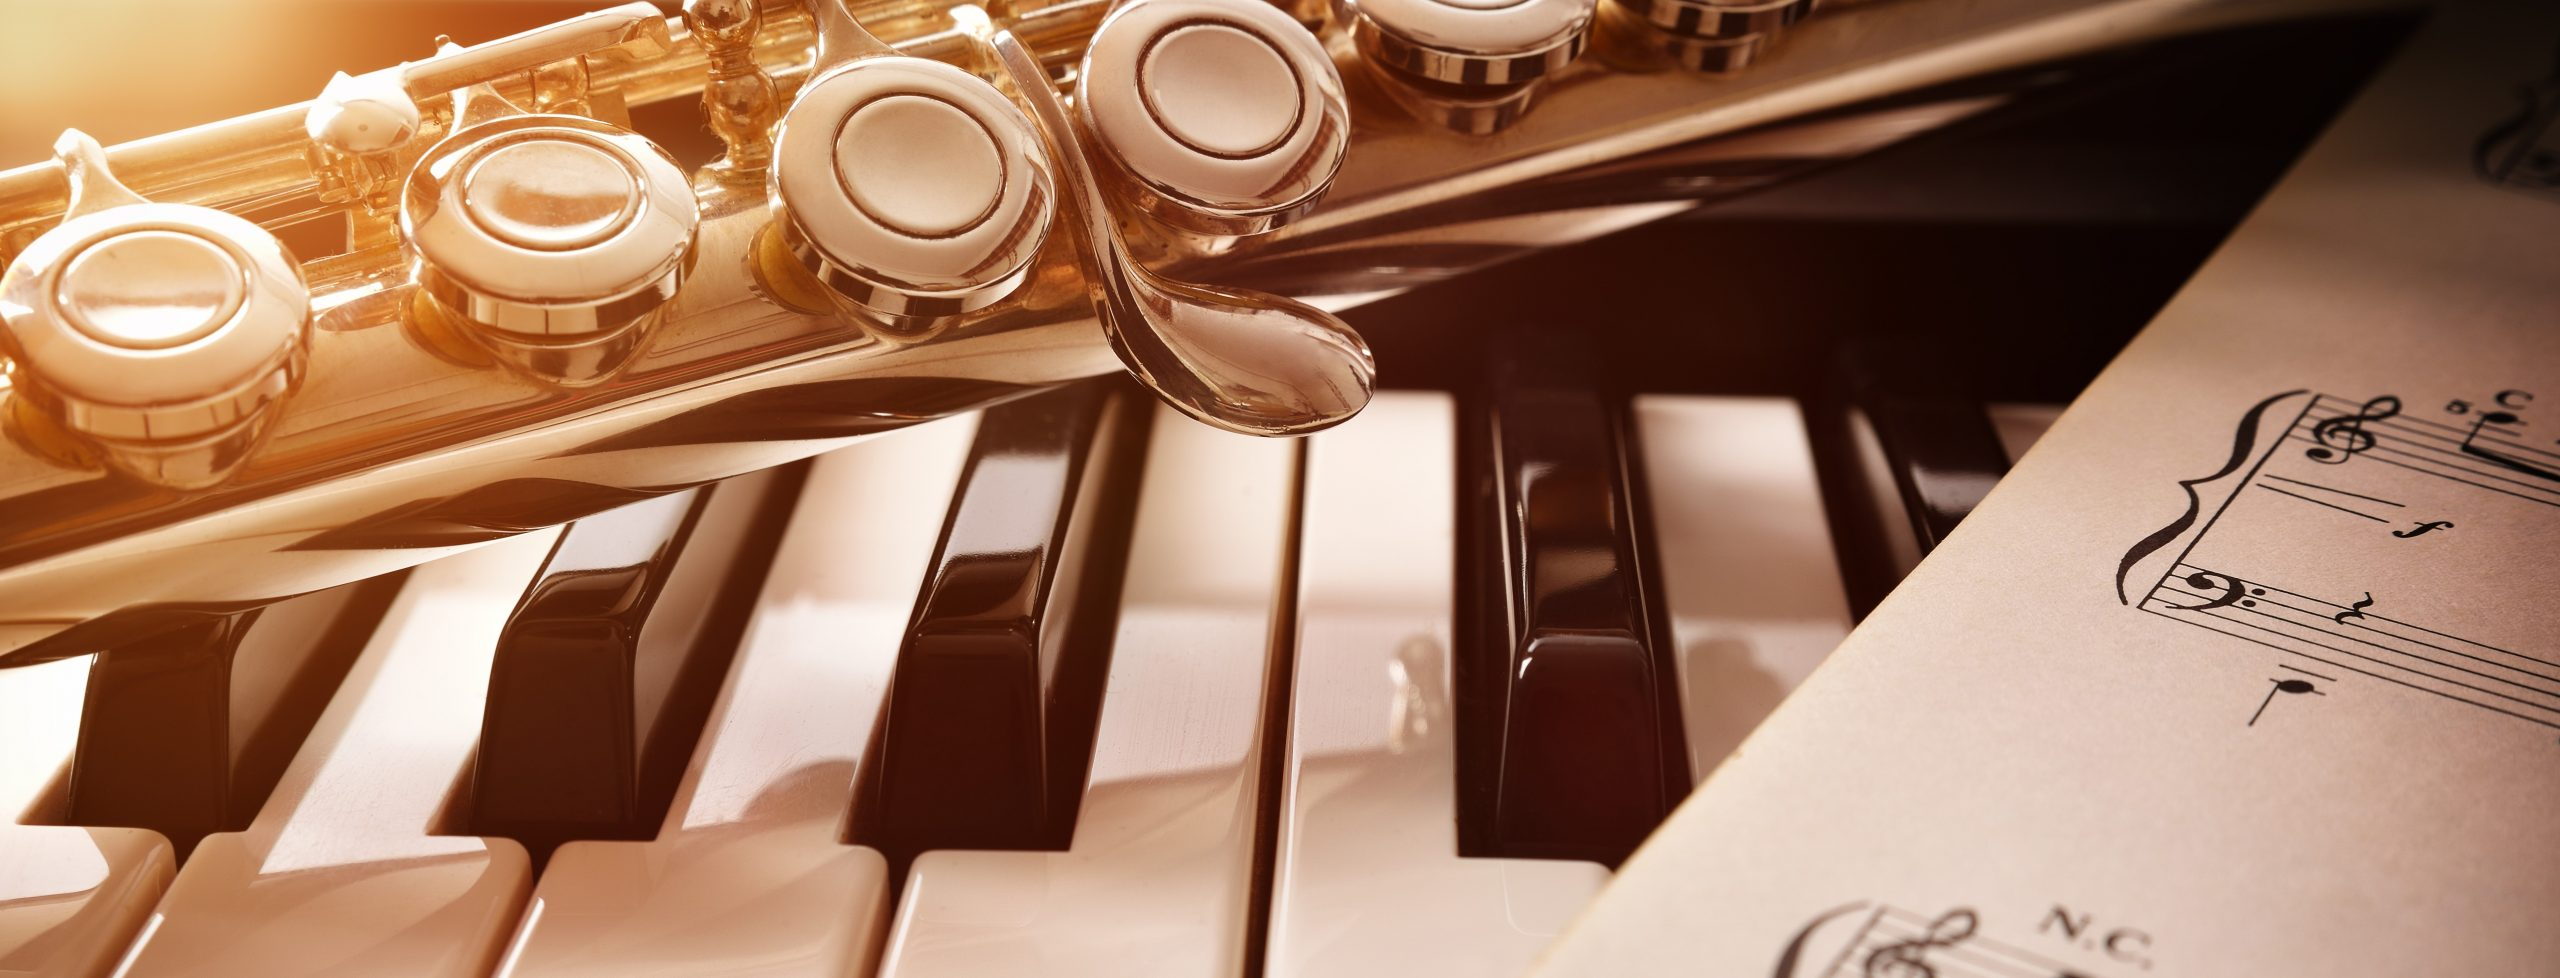 Flute and Piano Image Banner 1